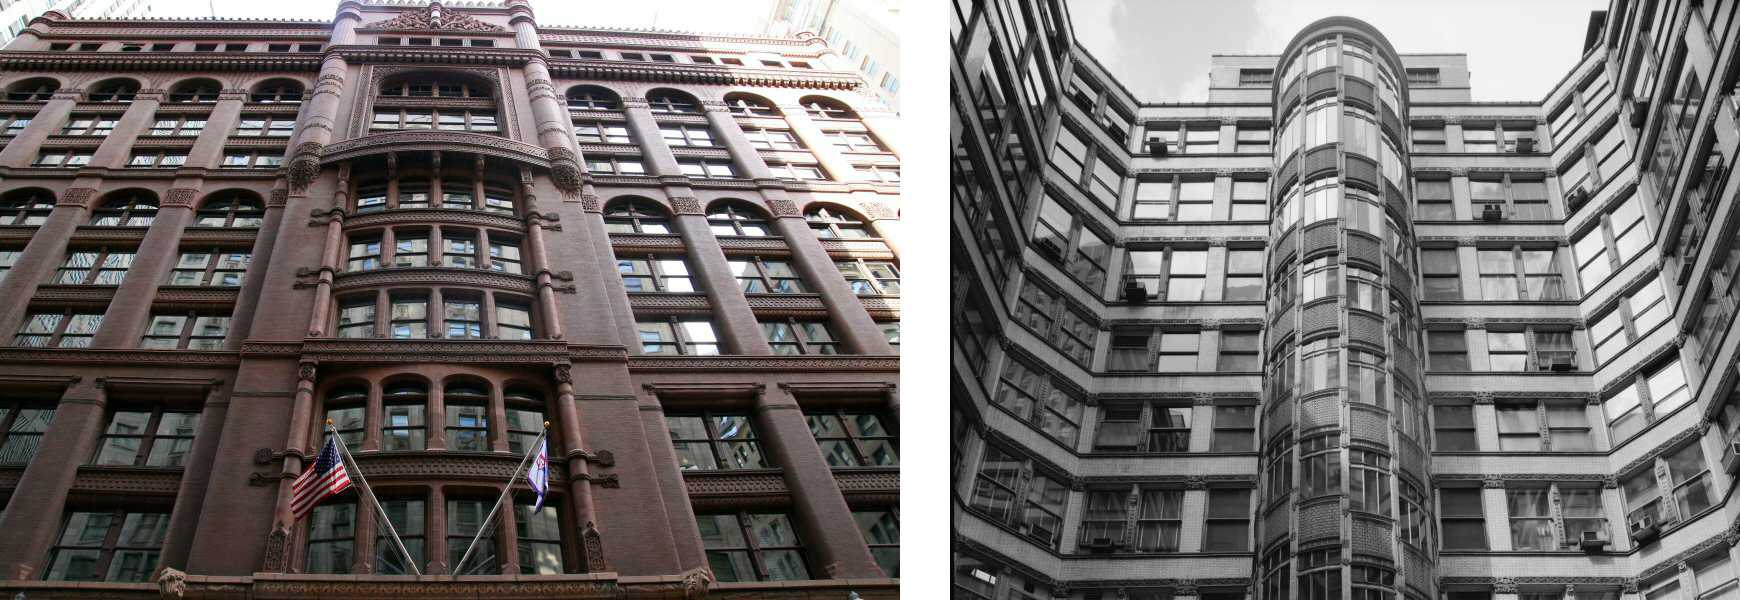 Two photos of the Rookery Building, facade and Light court with Oriel Staircase, Chicago, Illinois